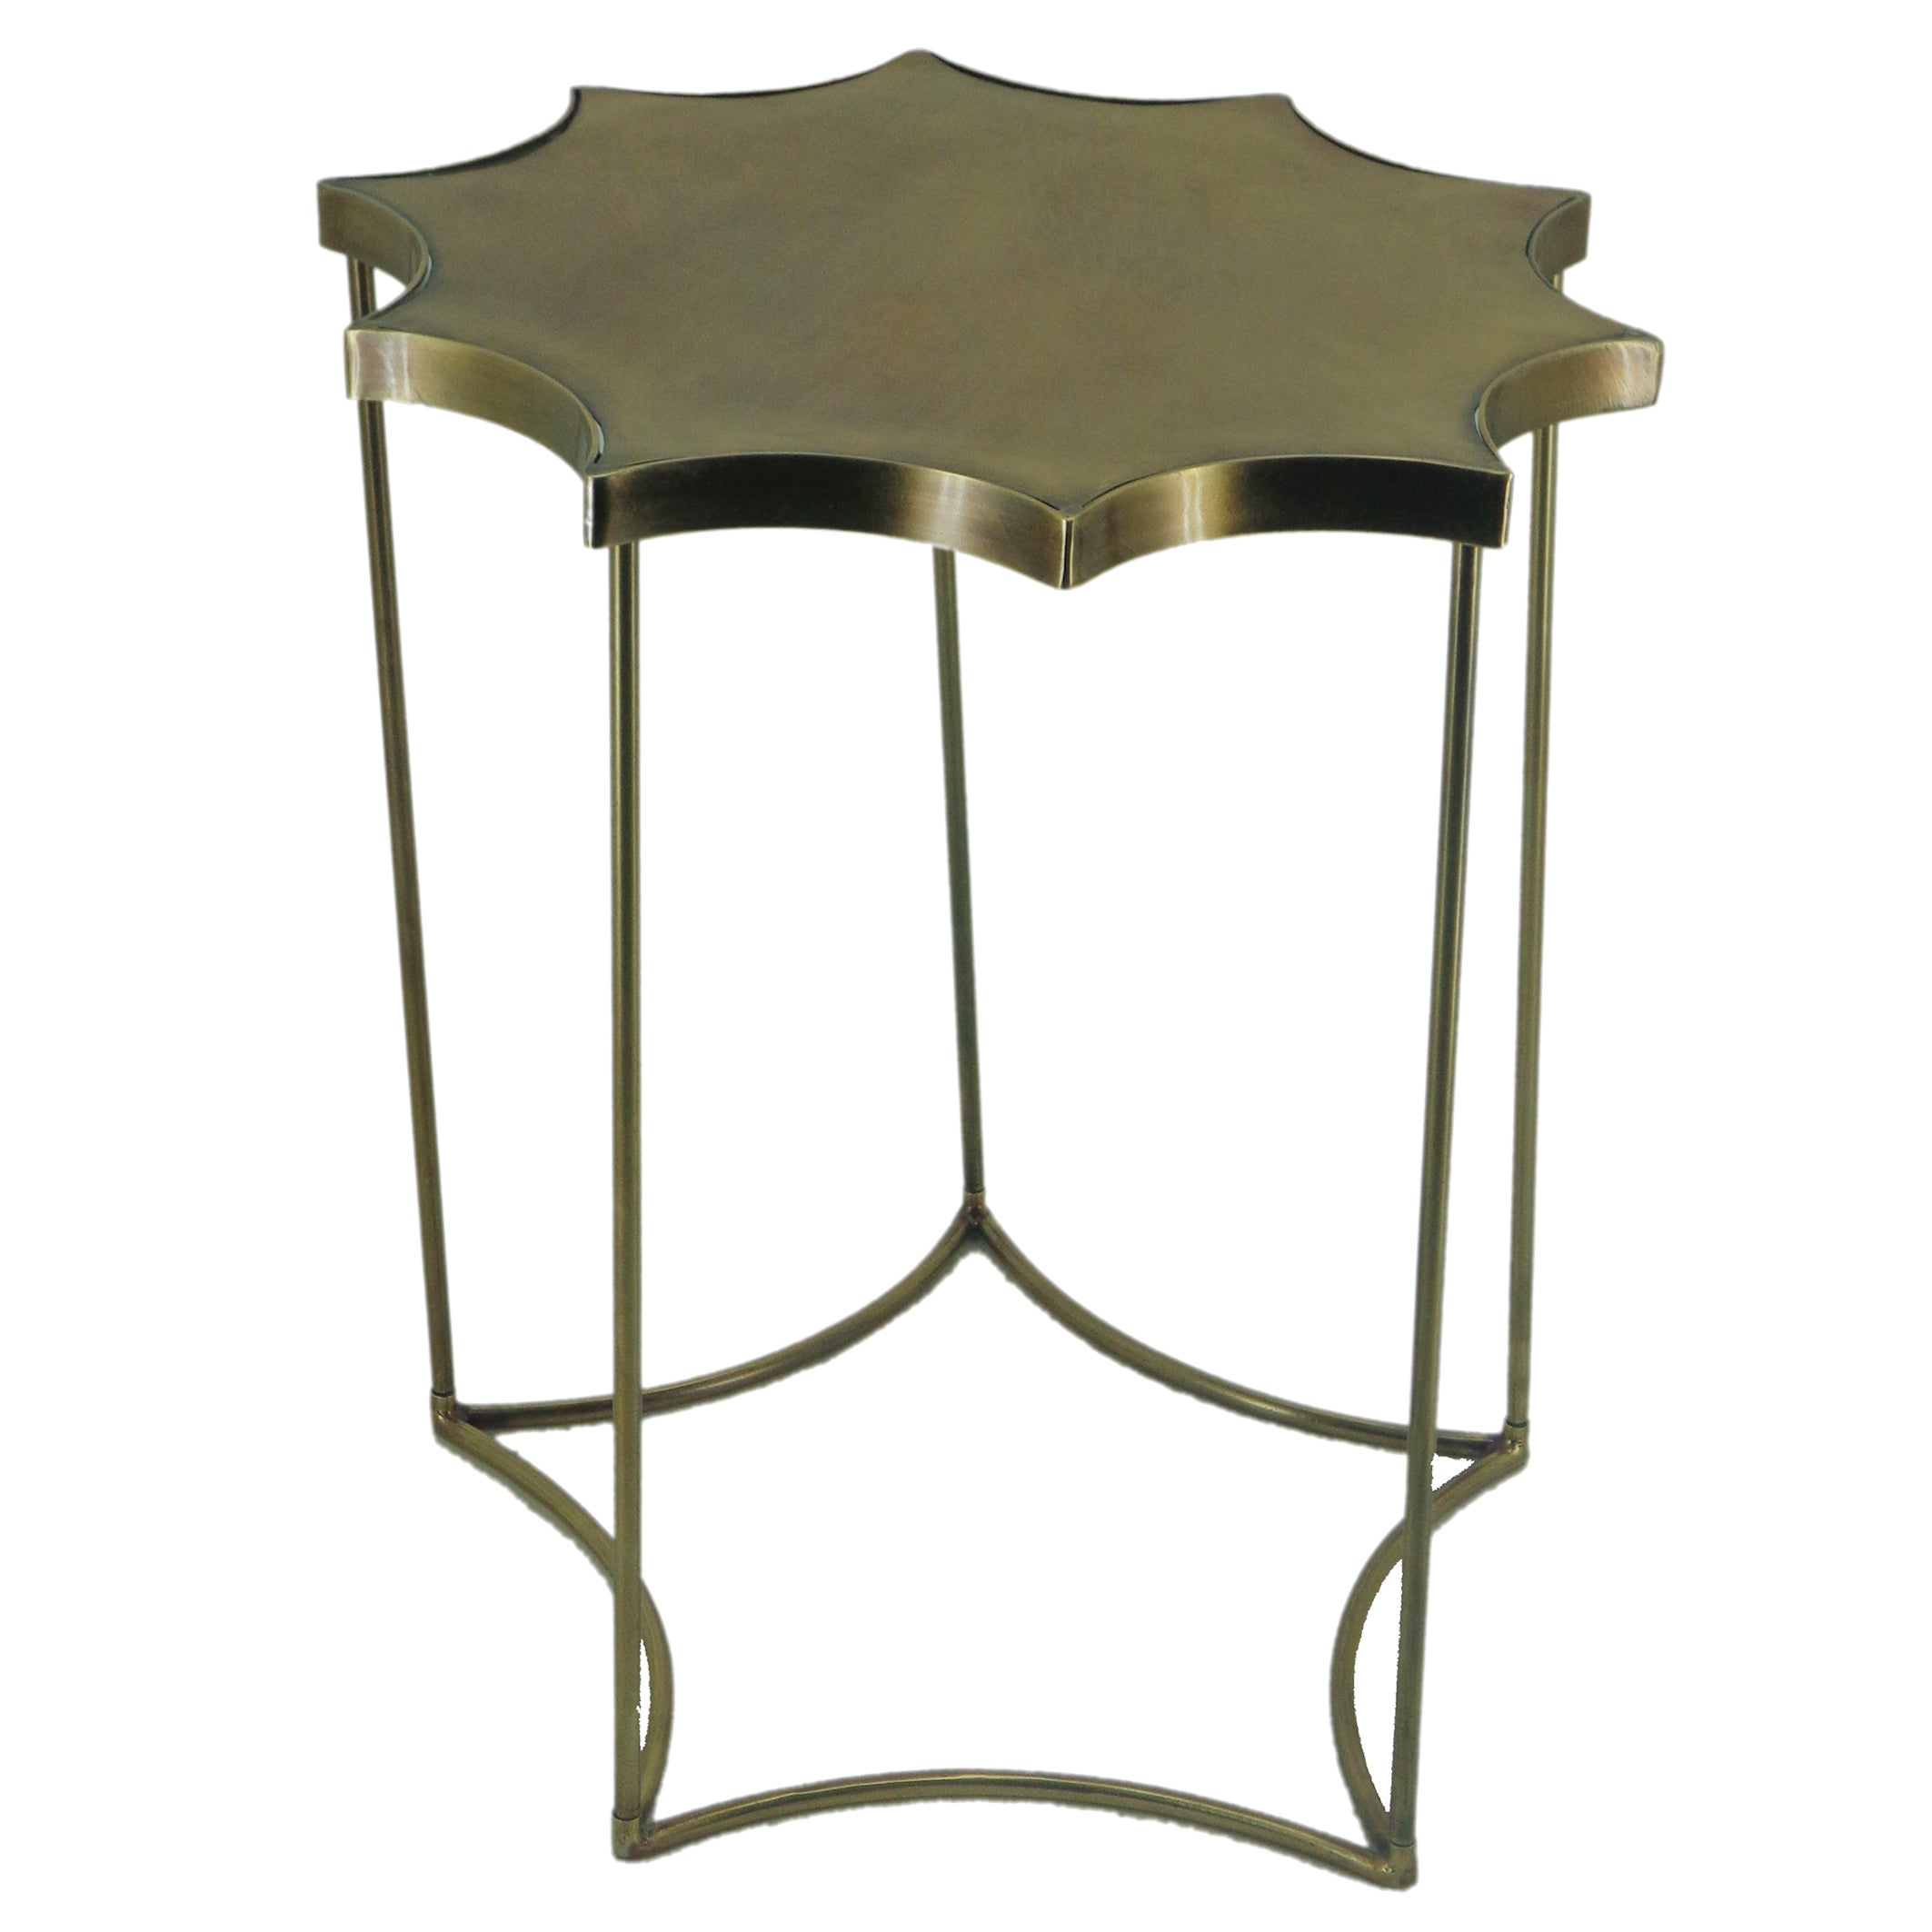 Shop brass starburst end table free shipping today overstock com 12715376